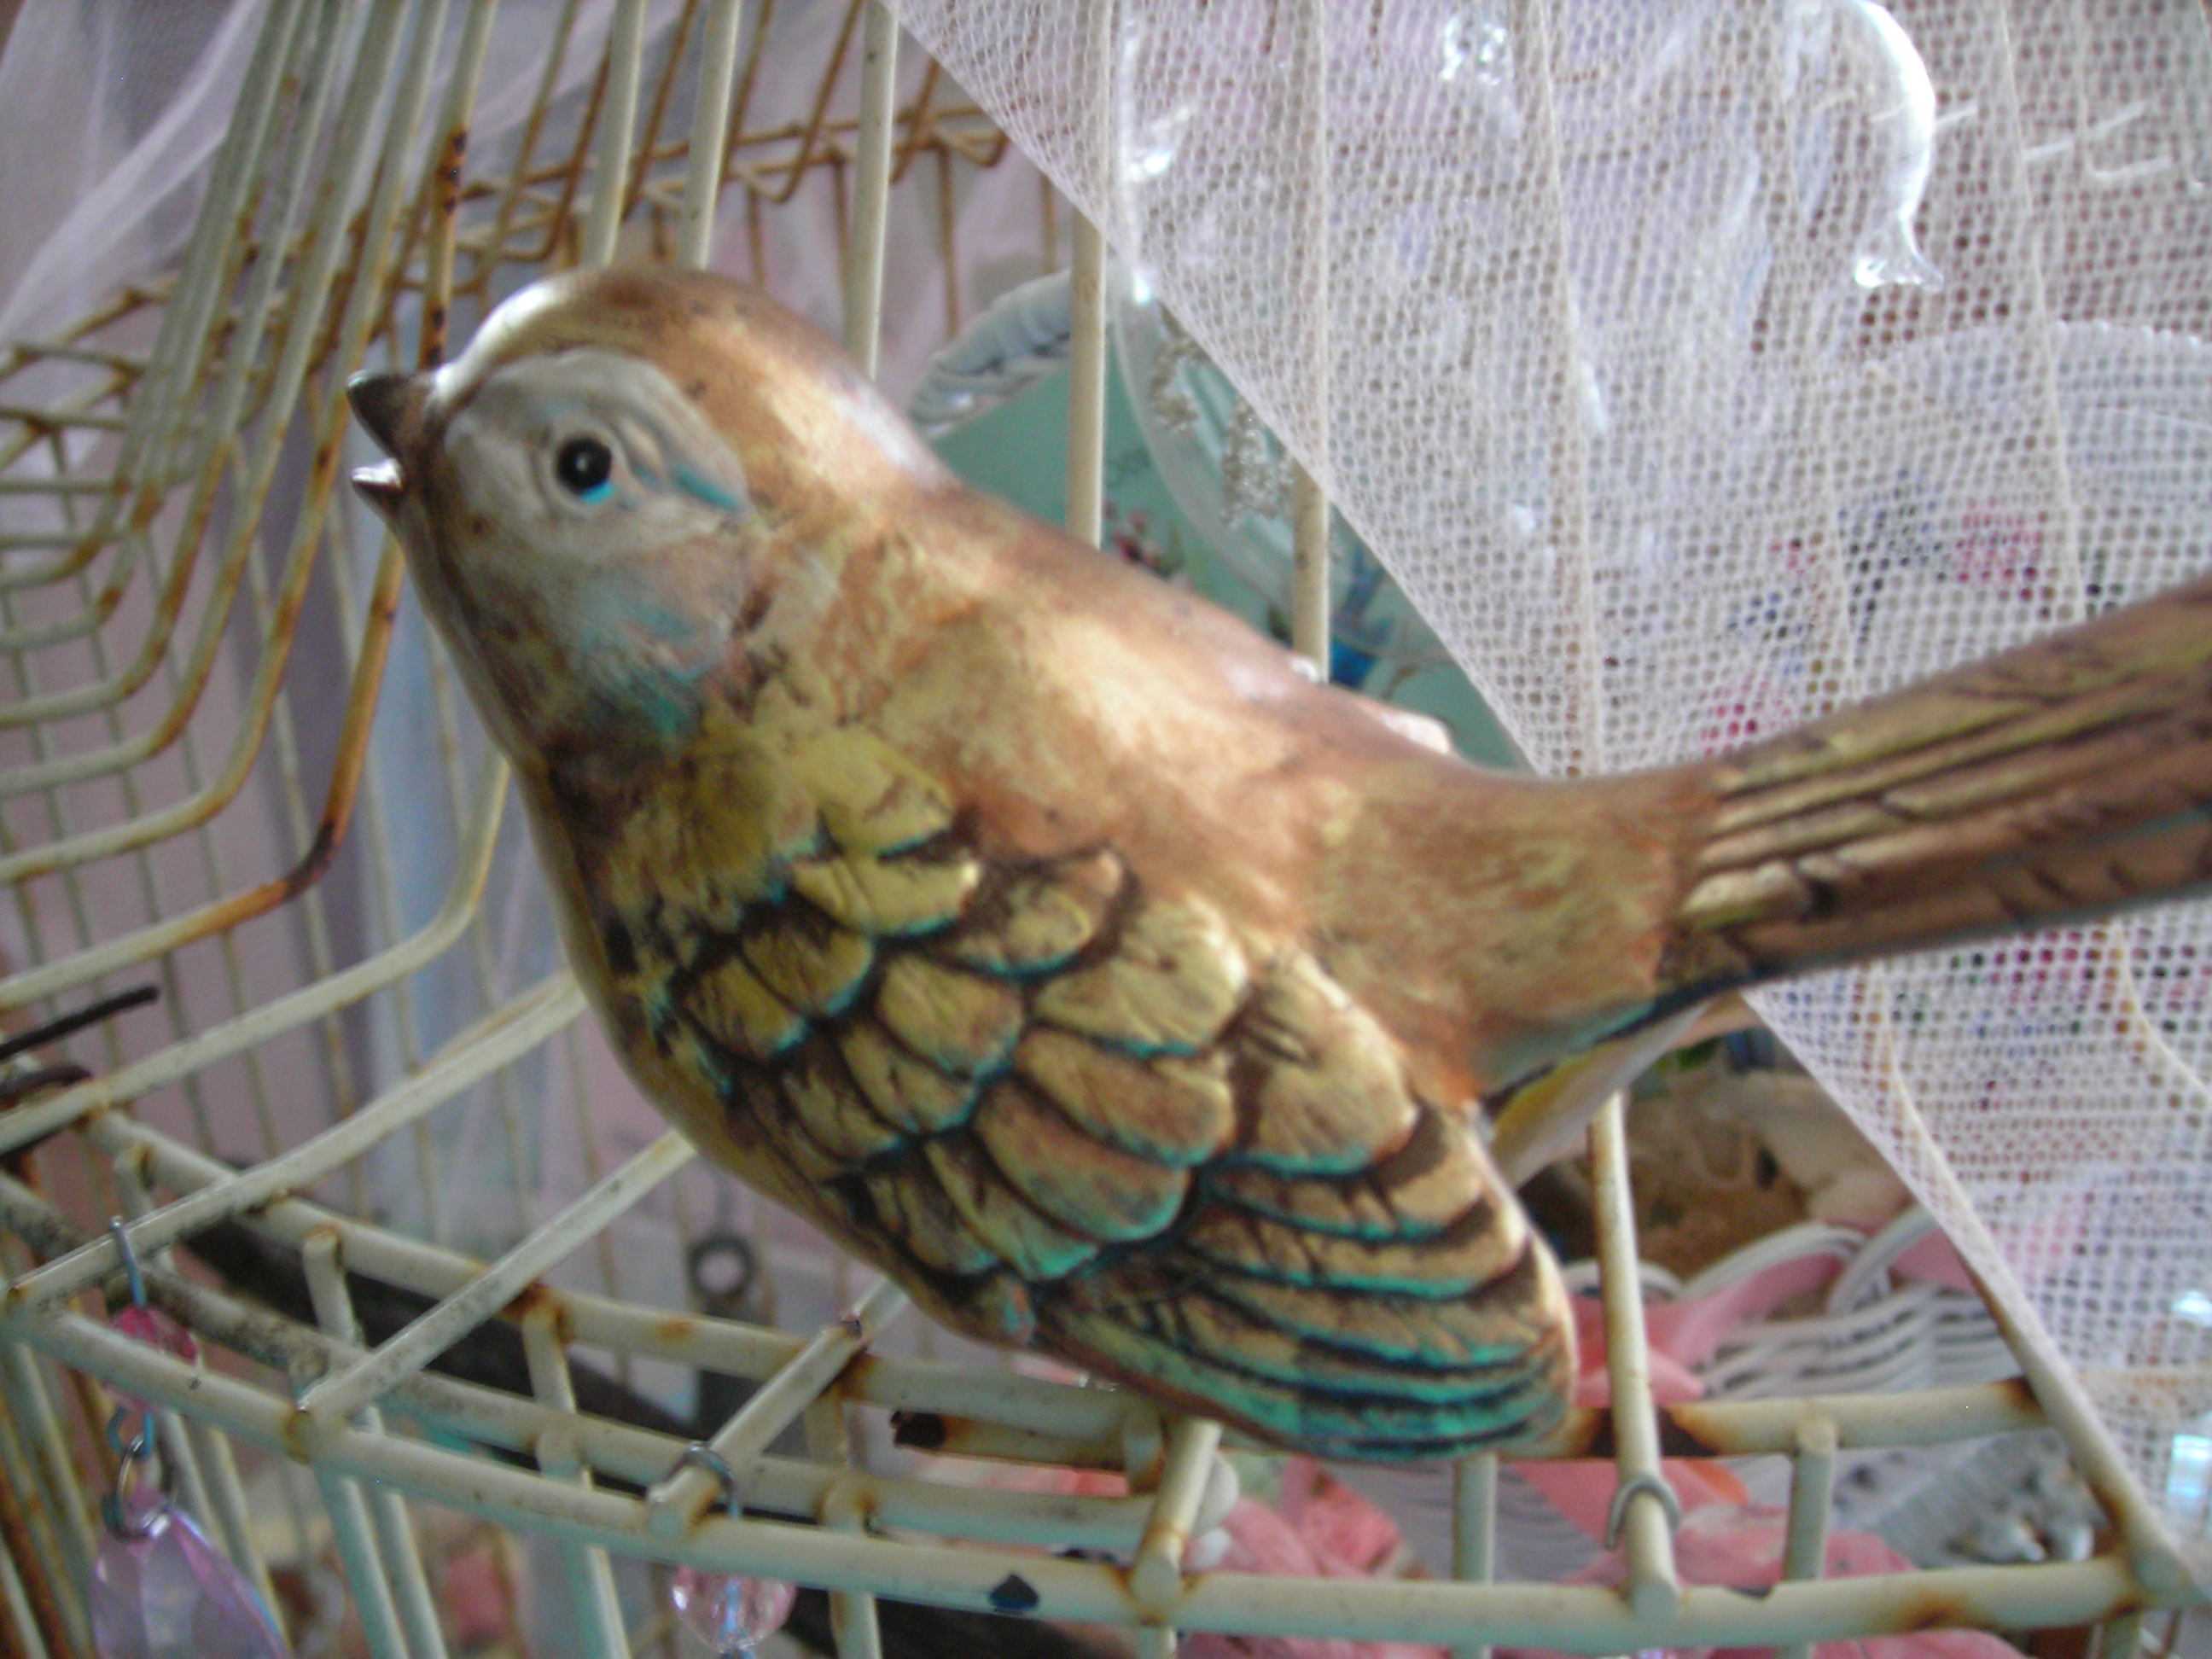 meet my other new bird ... will add some sparkle to his wings ... too sweet